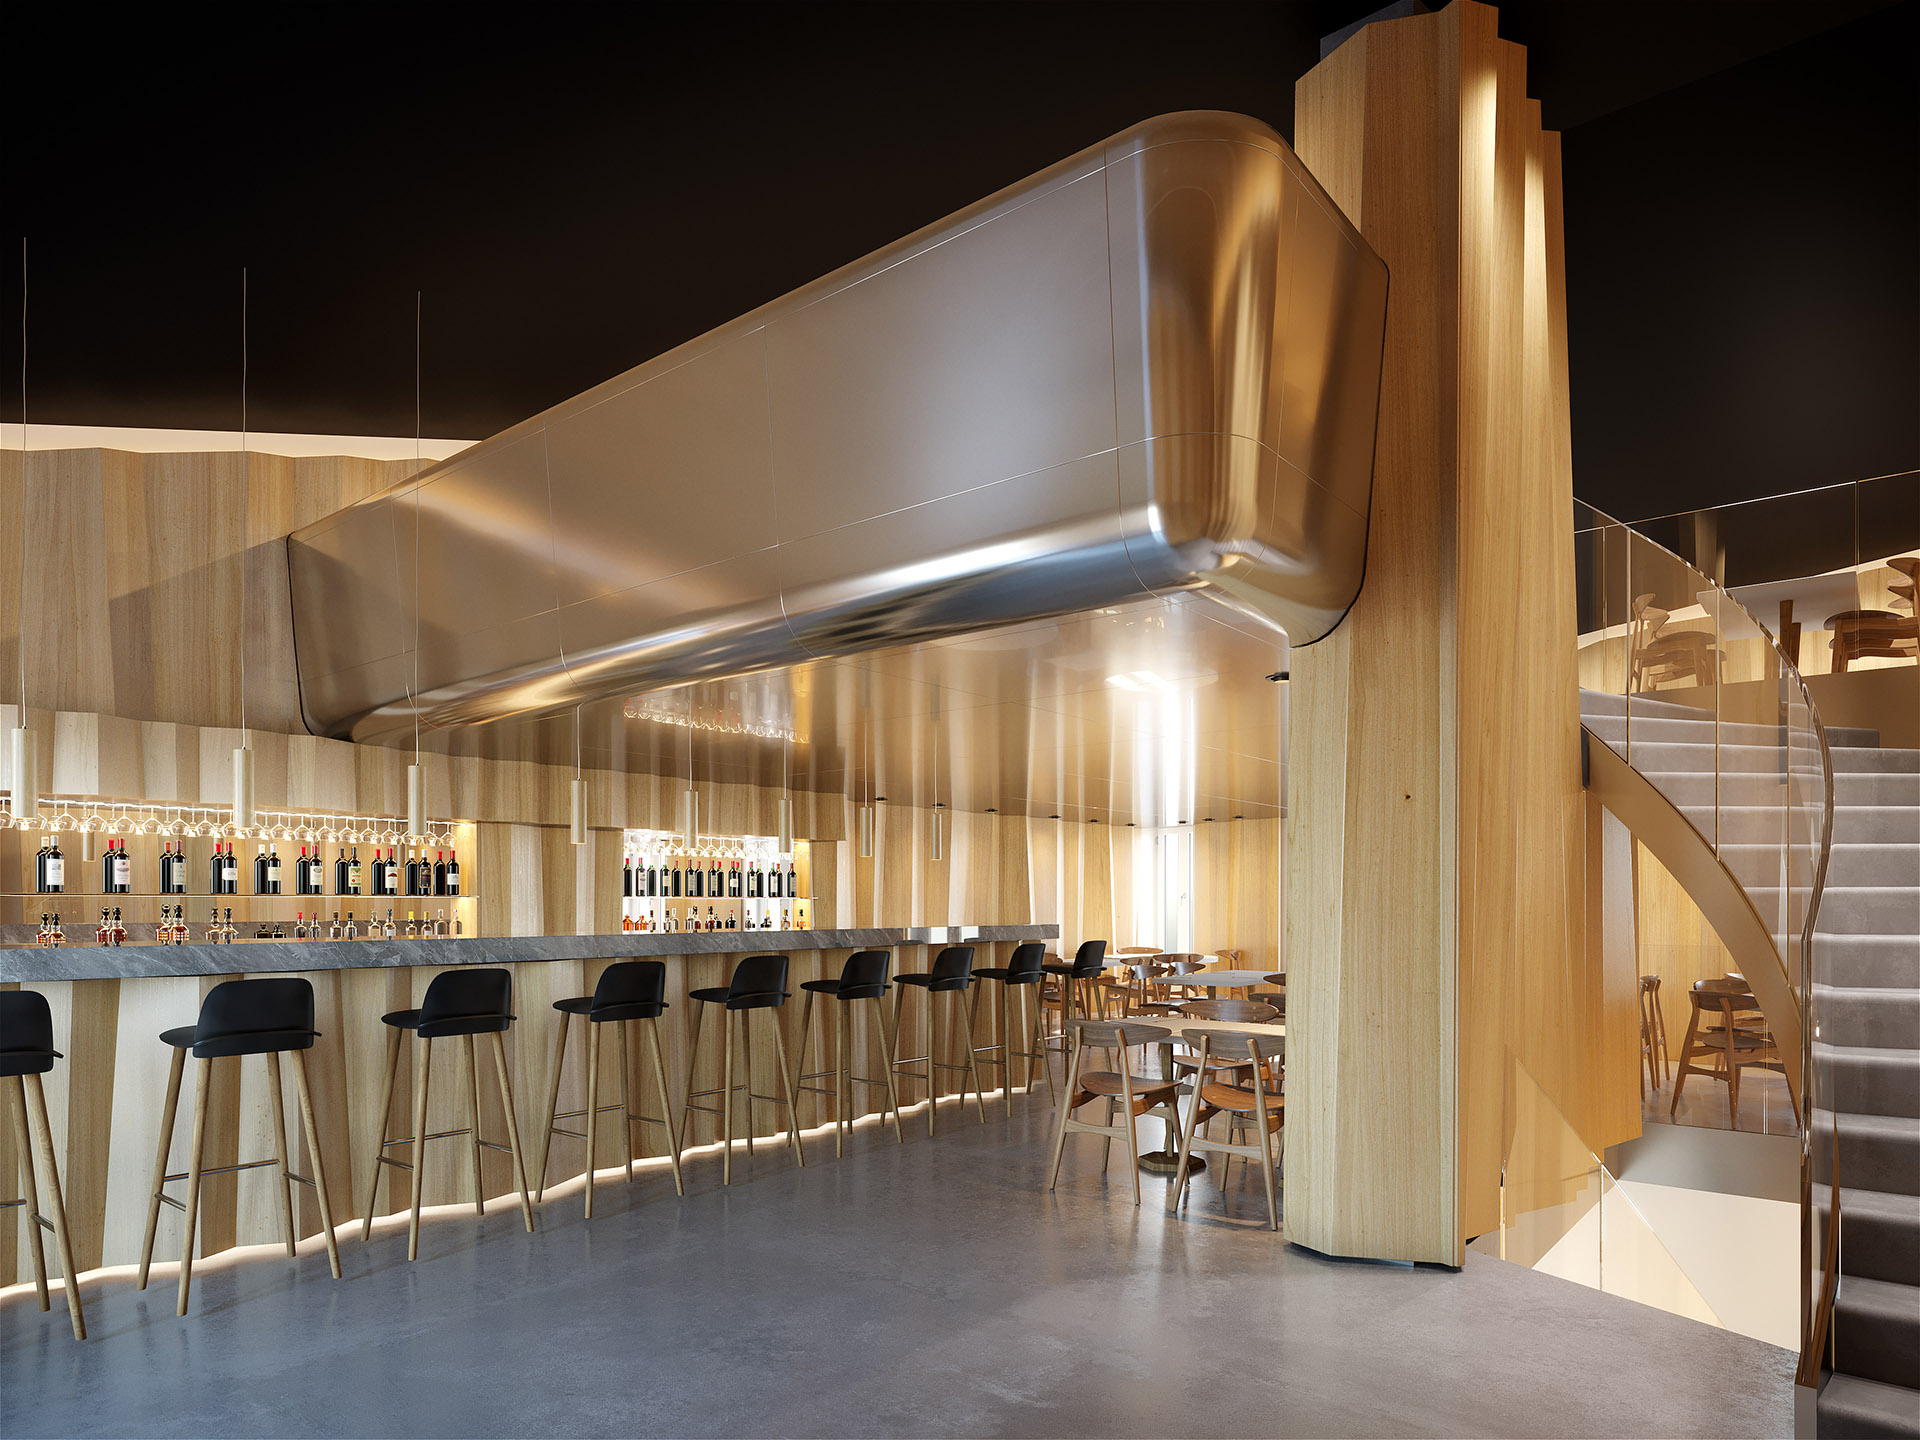 3D rendering of a luxury bar restaurant